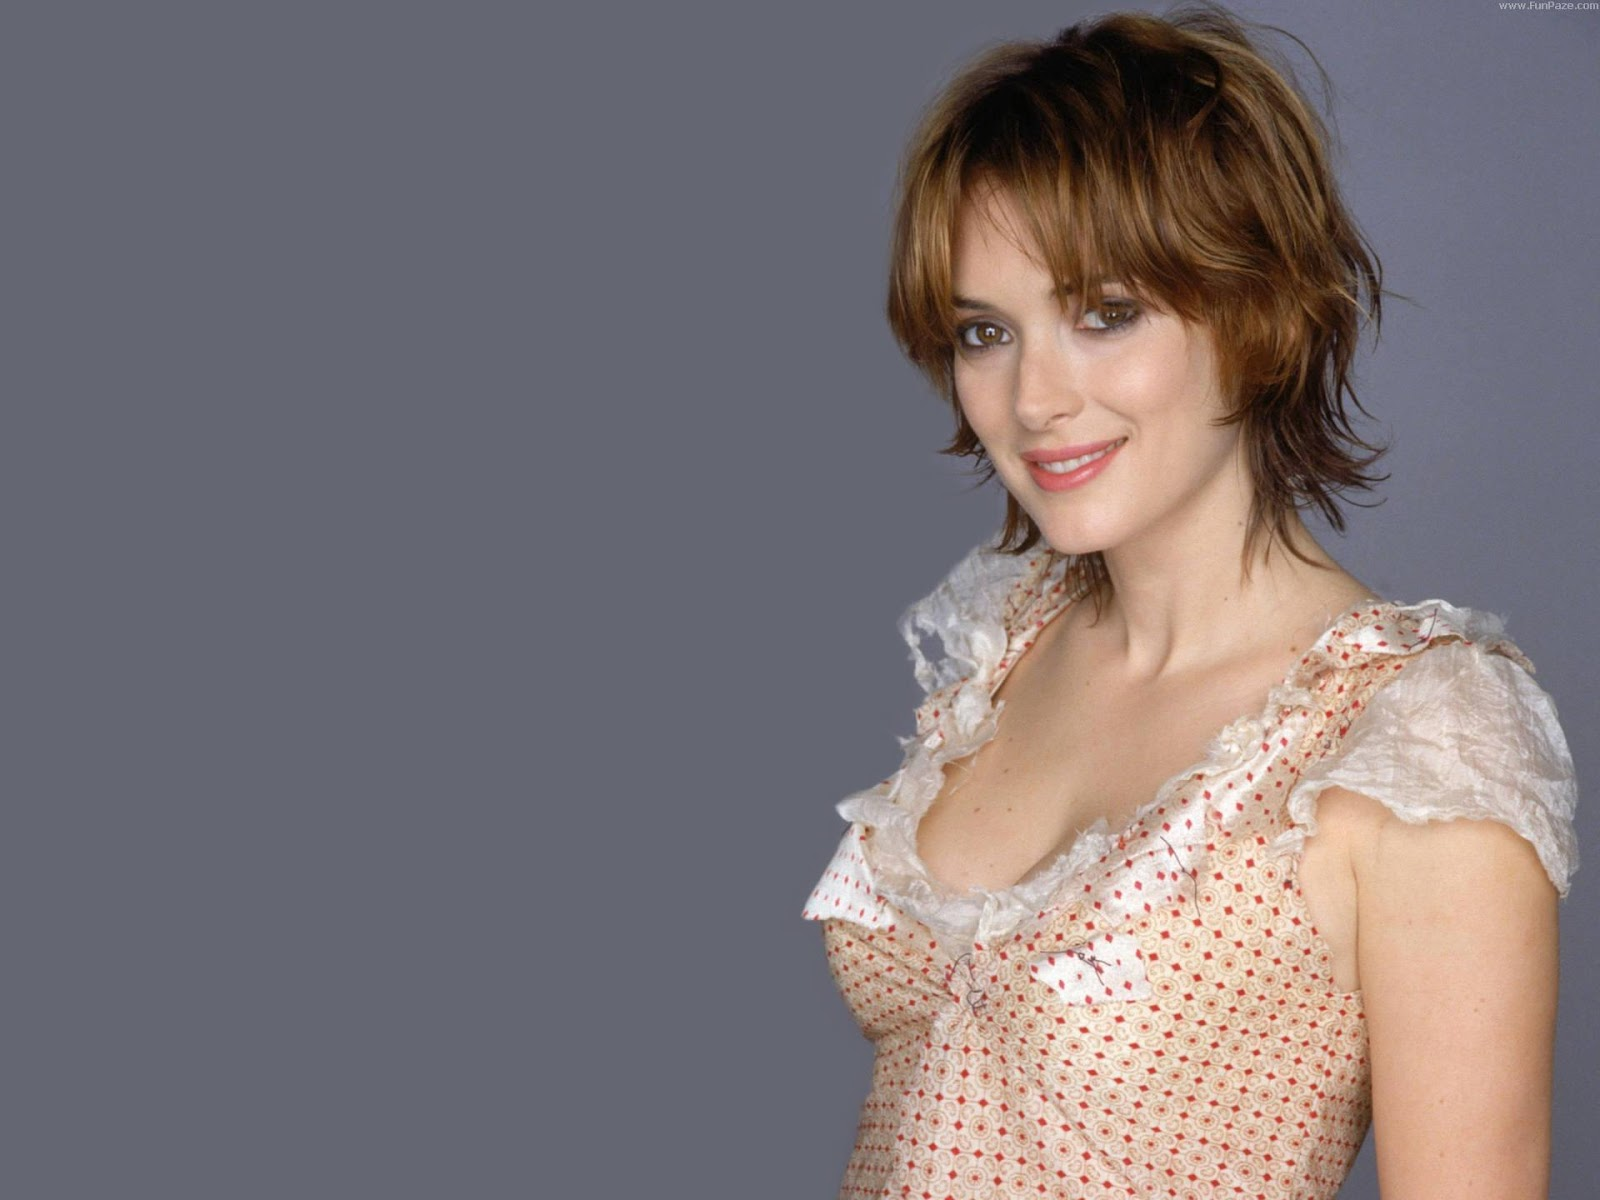 1600x1200 - Winona Ryder Wallpapers 16